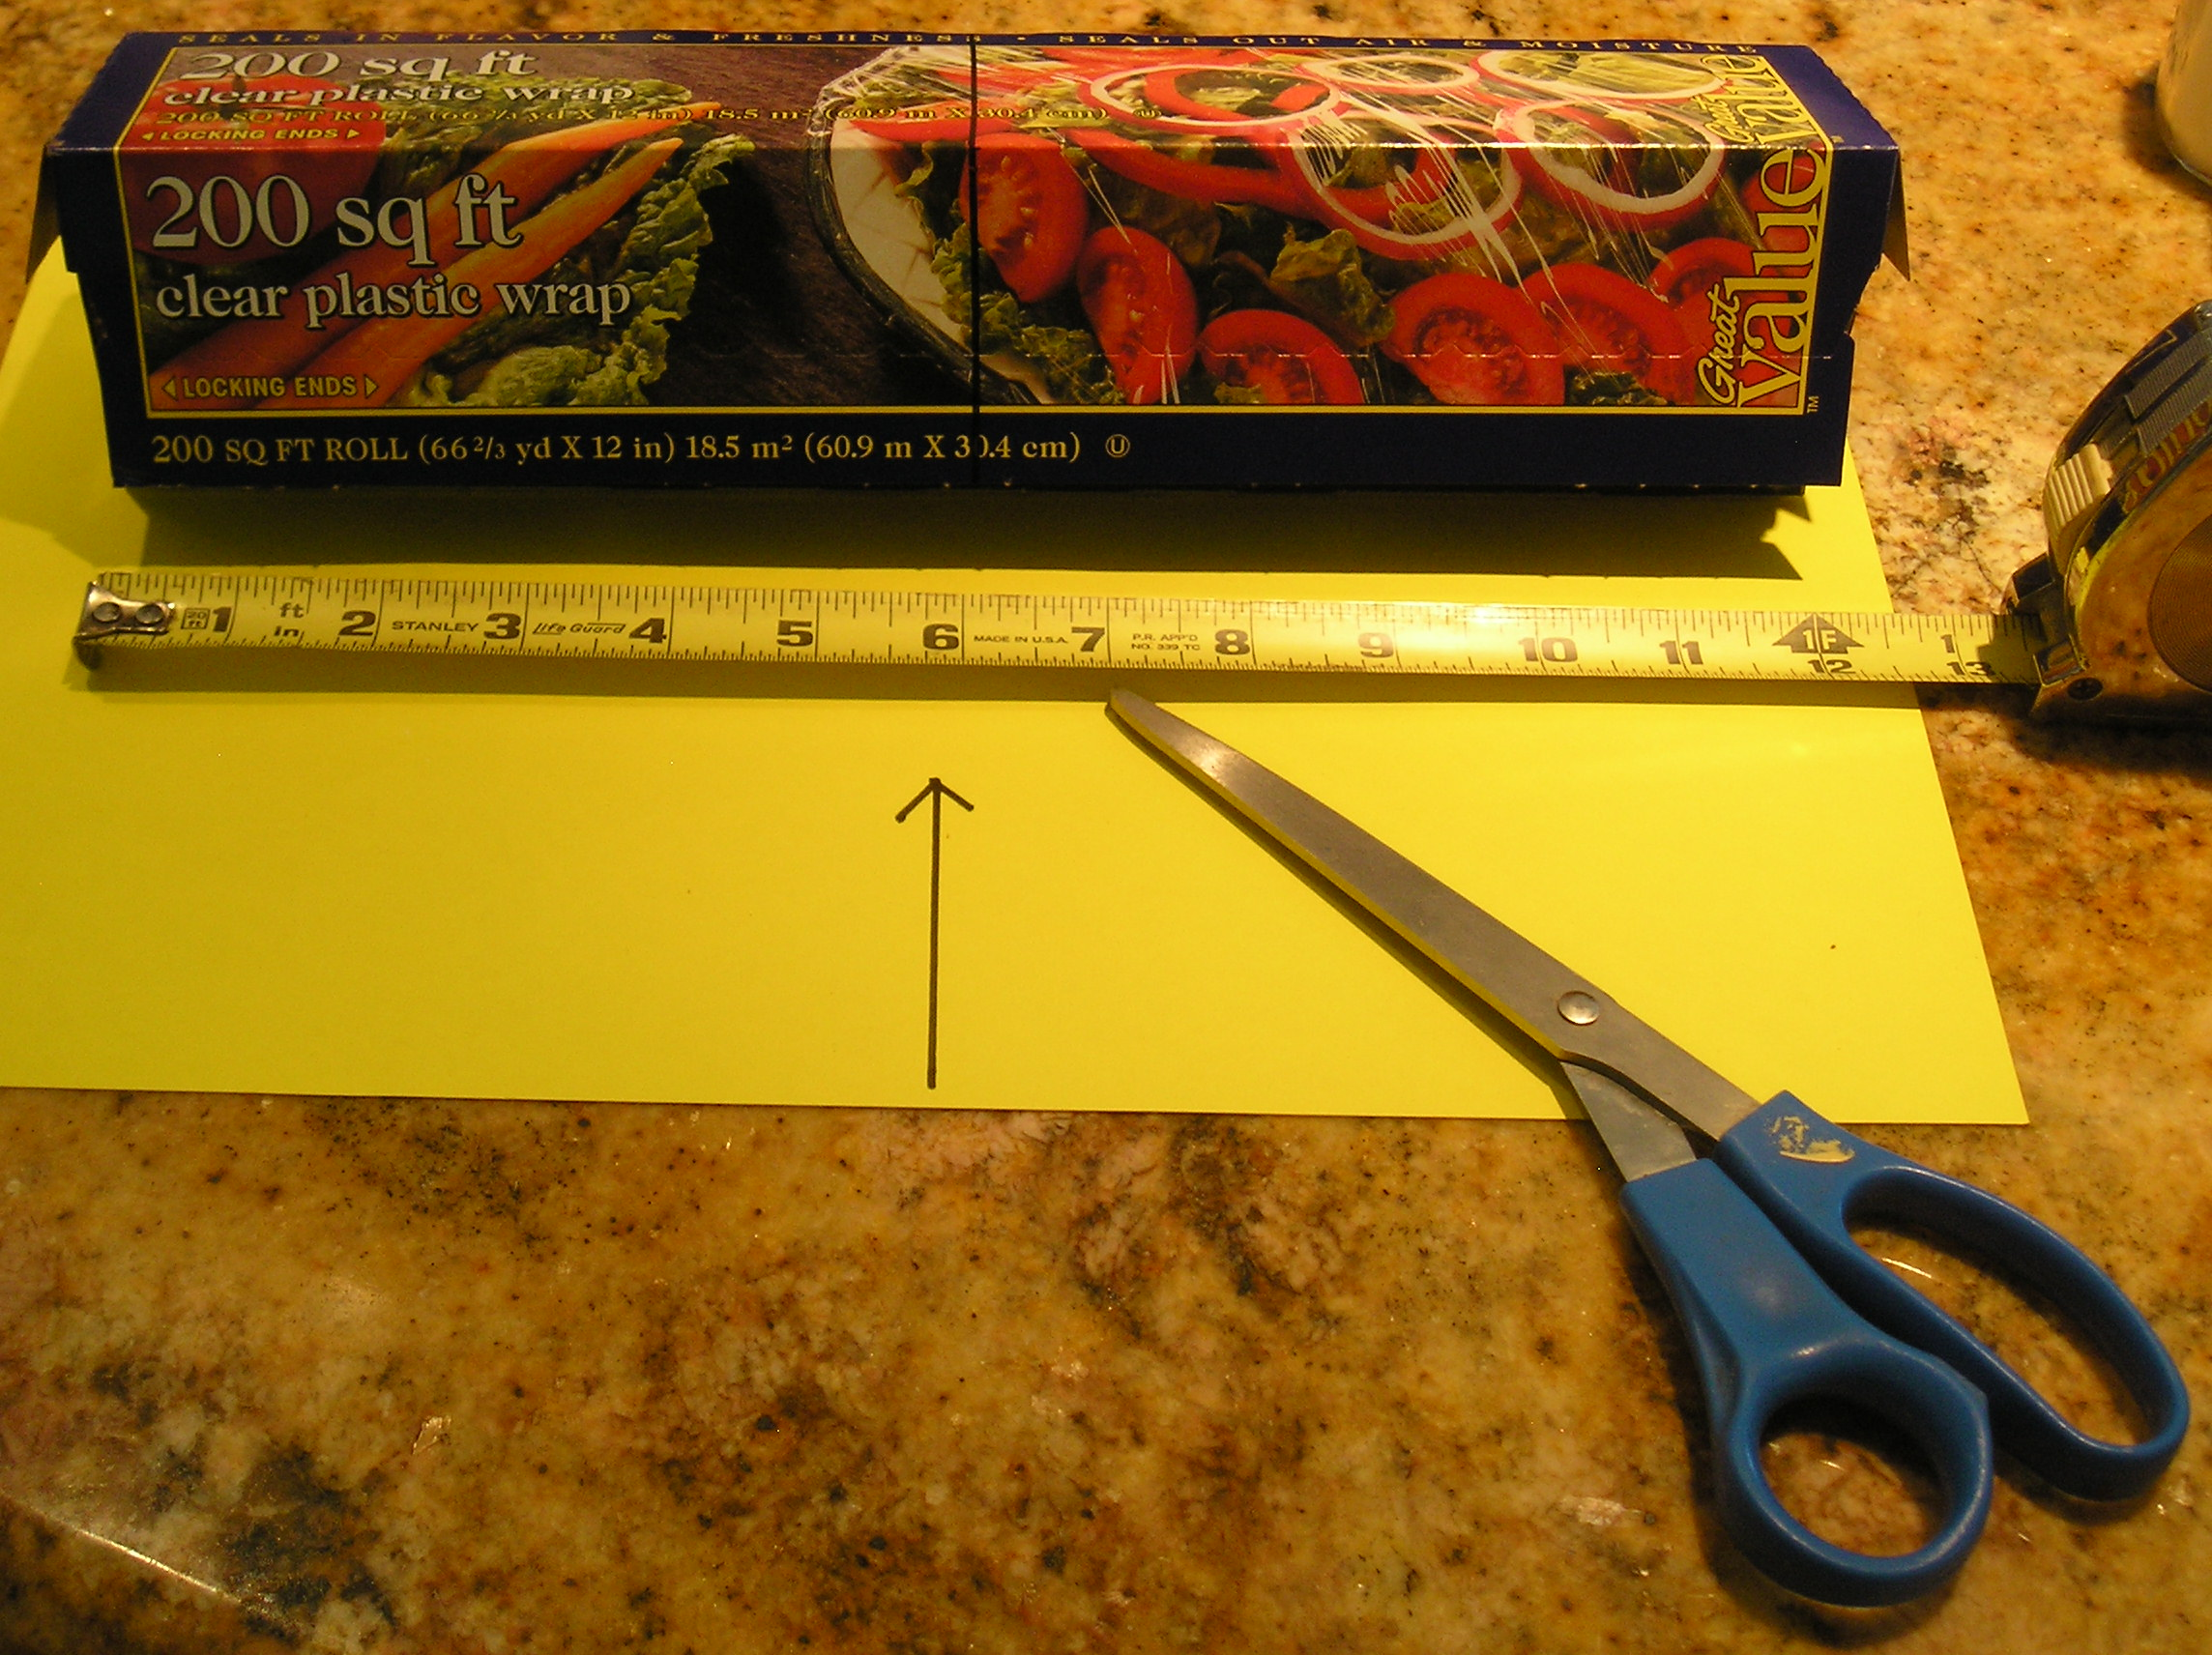 Picture of Mark Box and Roll Where You Want to Cut.